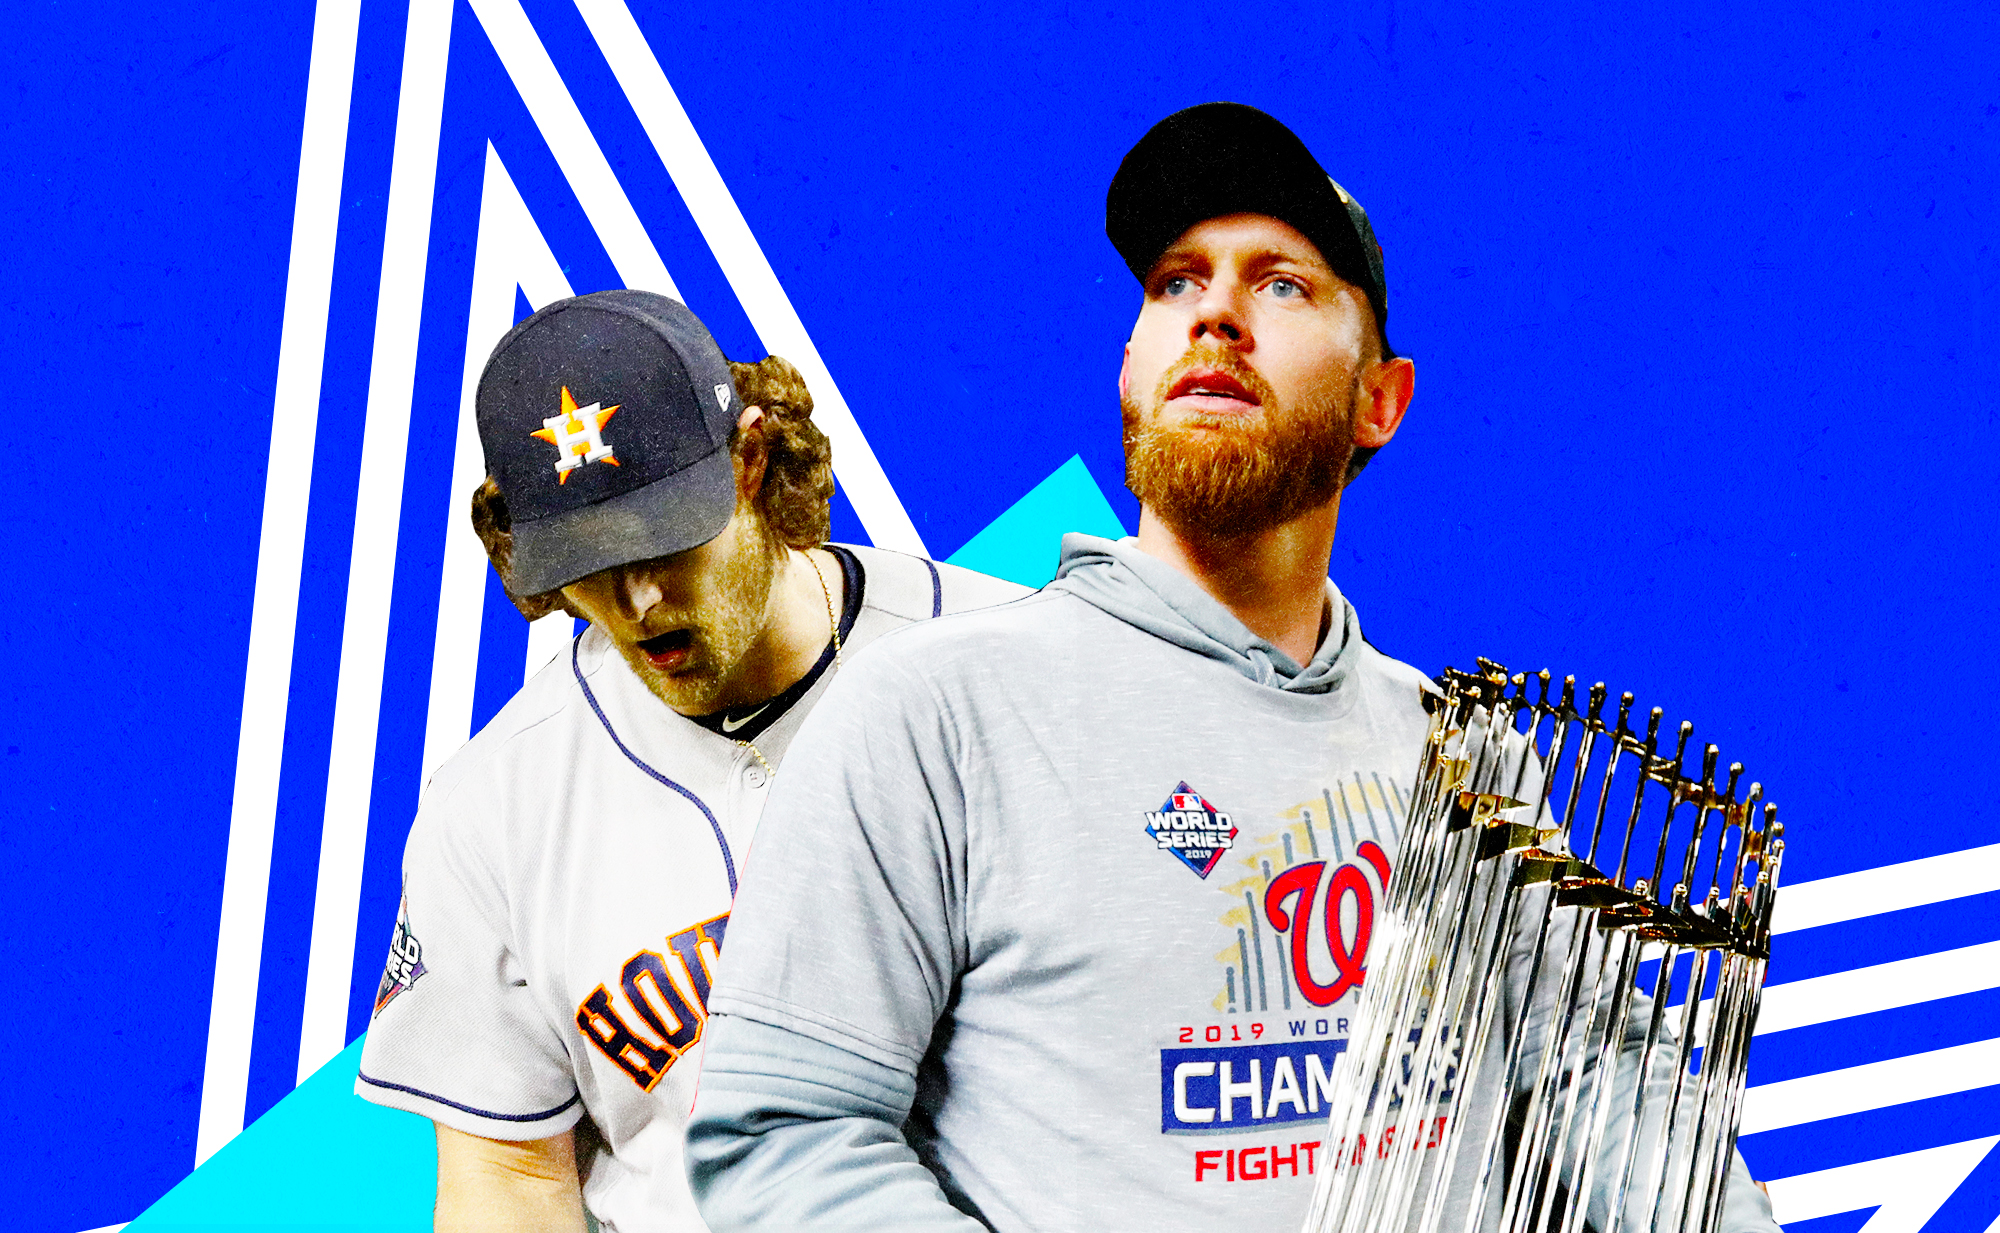 Gerrit Cole and Stephen Strasburg were the best two pitchers this postseason, and now are the best two pitchers on the MLB free agent market. They are poised to cash in this offseason.